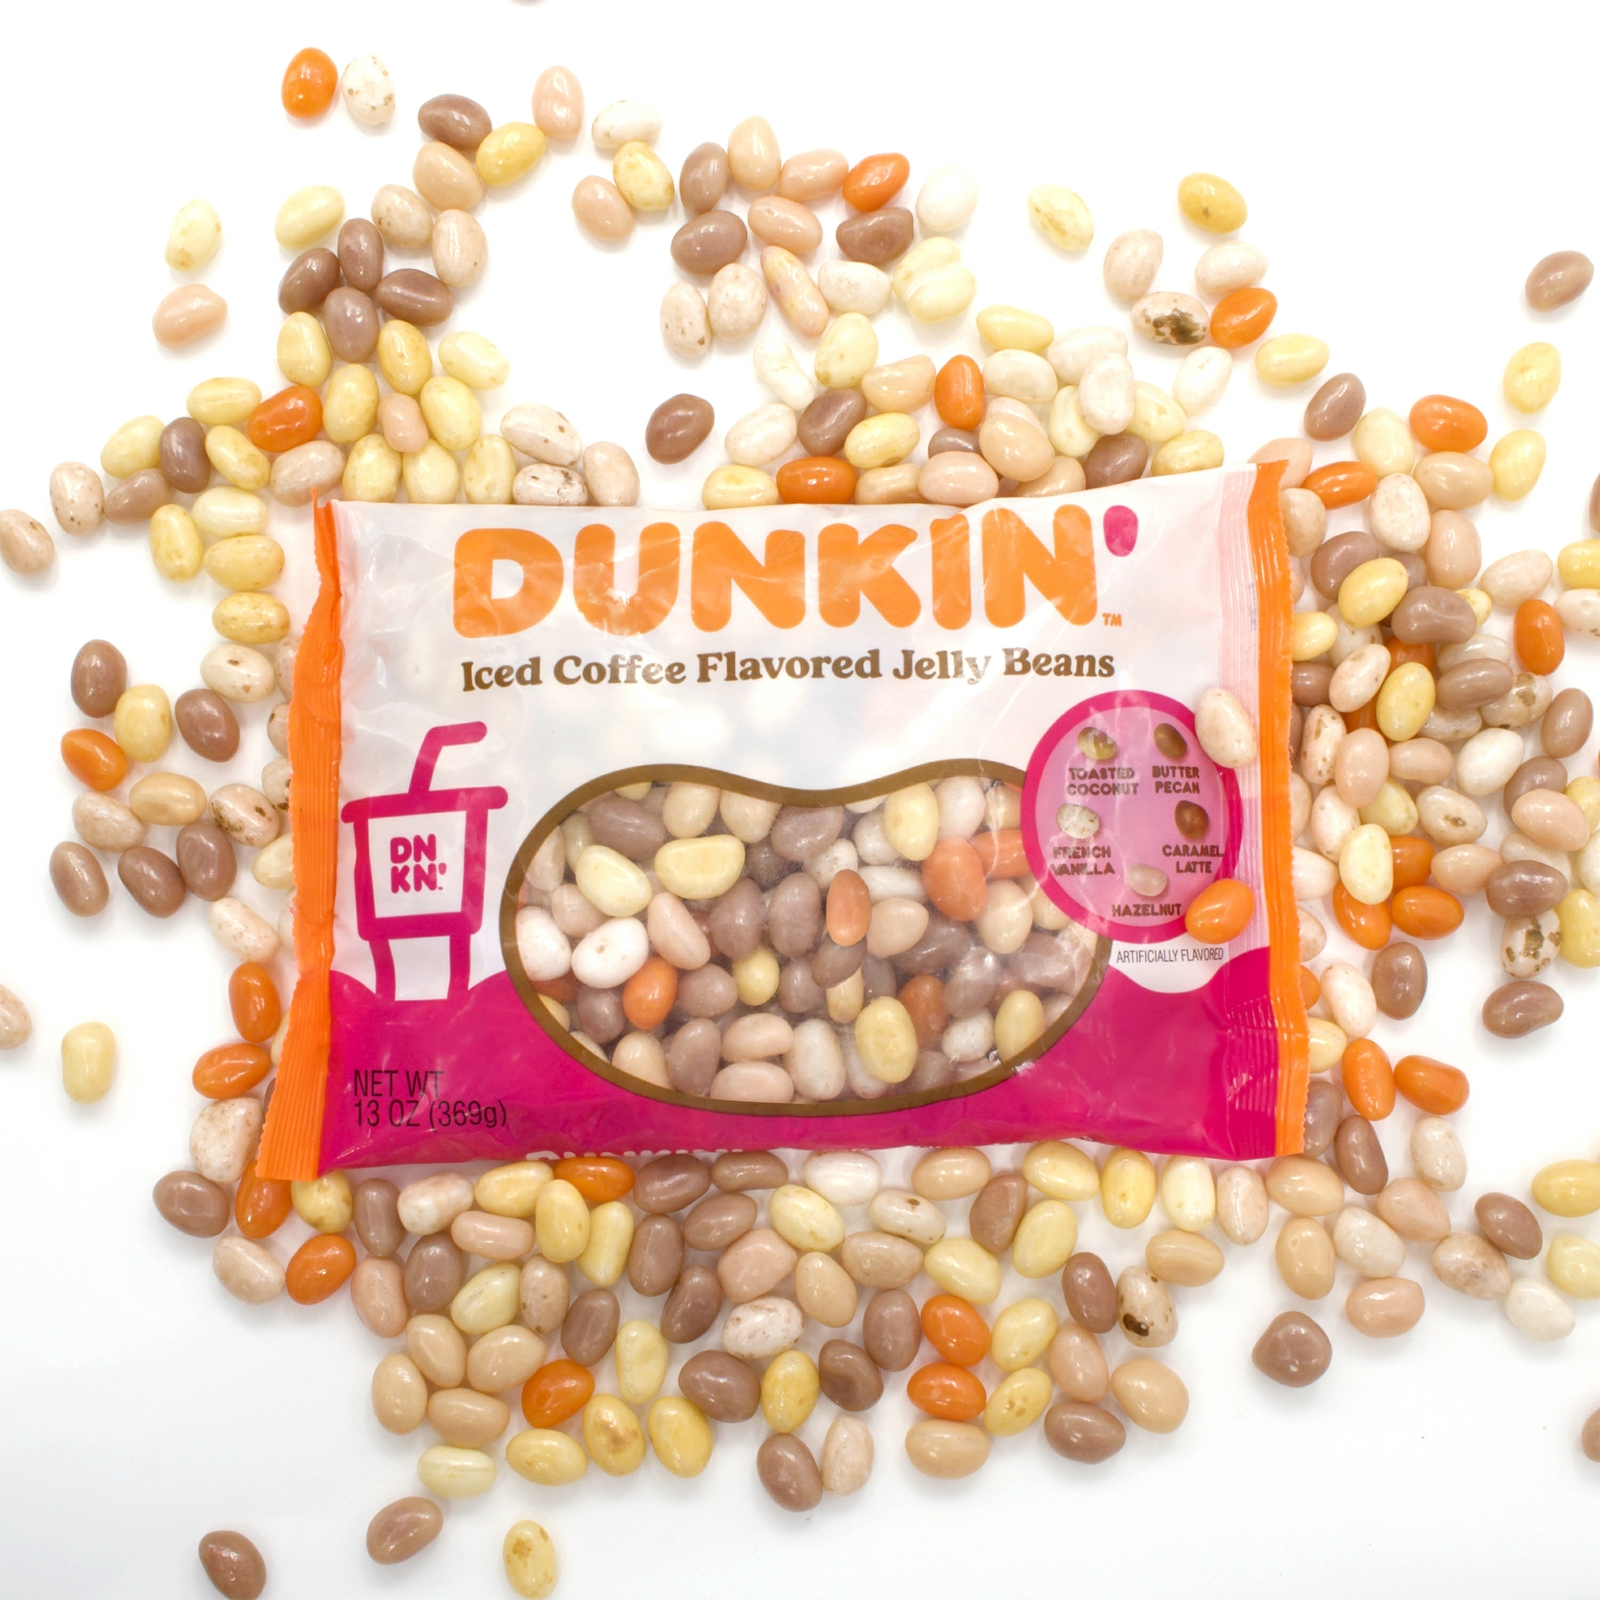 Dunkin' and Frankford Candy Brew Easter Season Sweetness with New Iced Coffee Flavored Jelly Beans